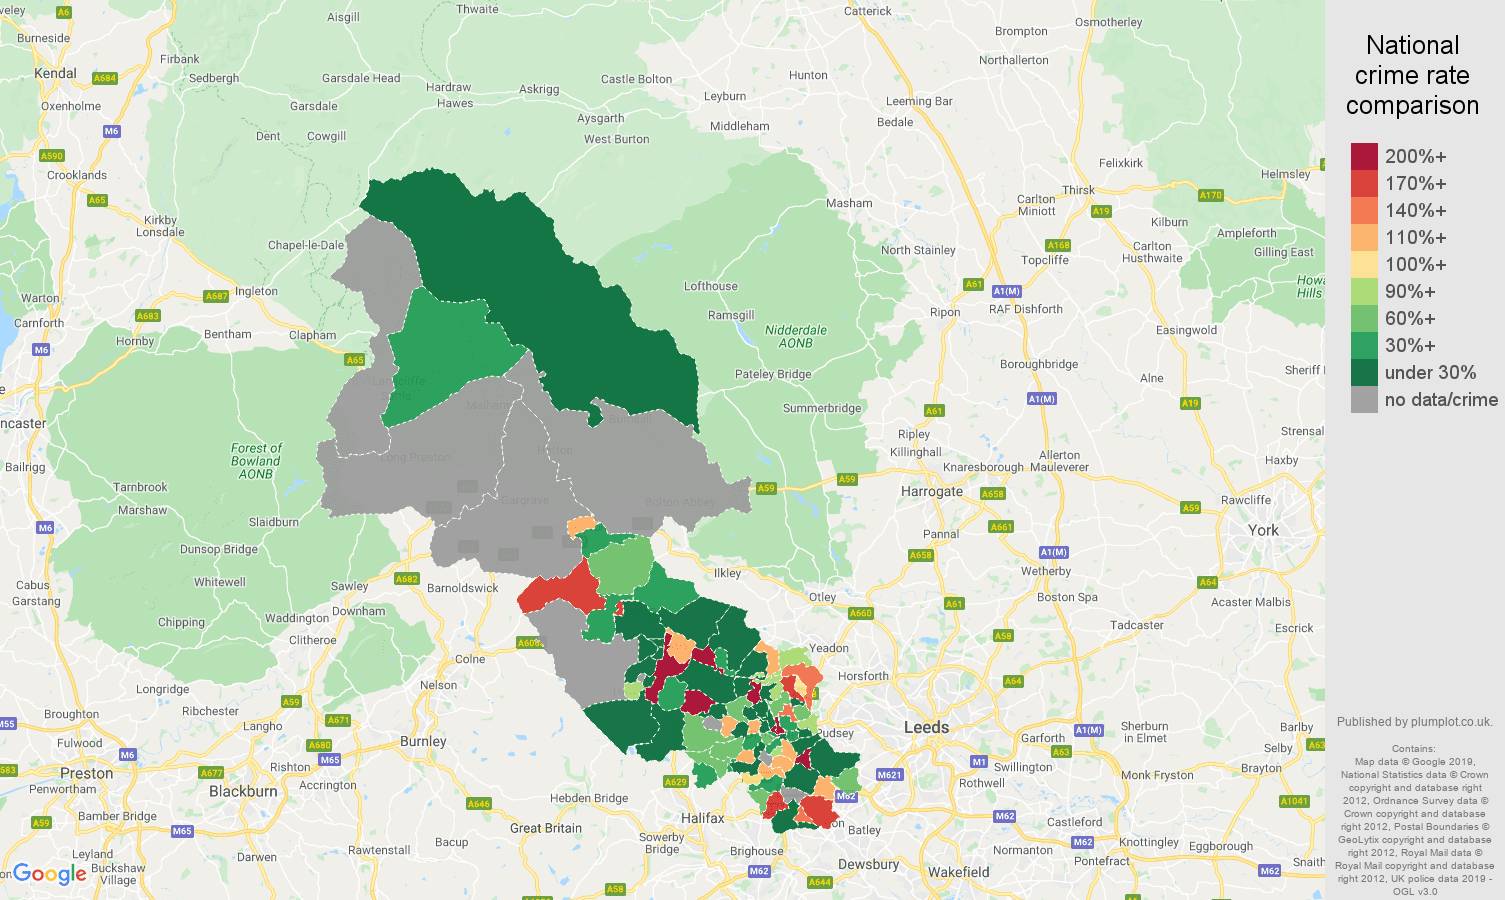 Bradford shoplifting crime rate comparison map